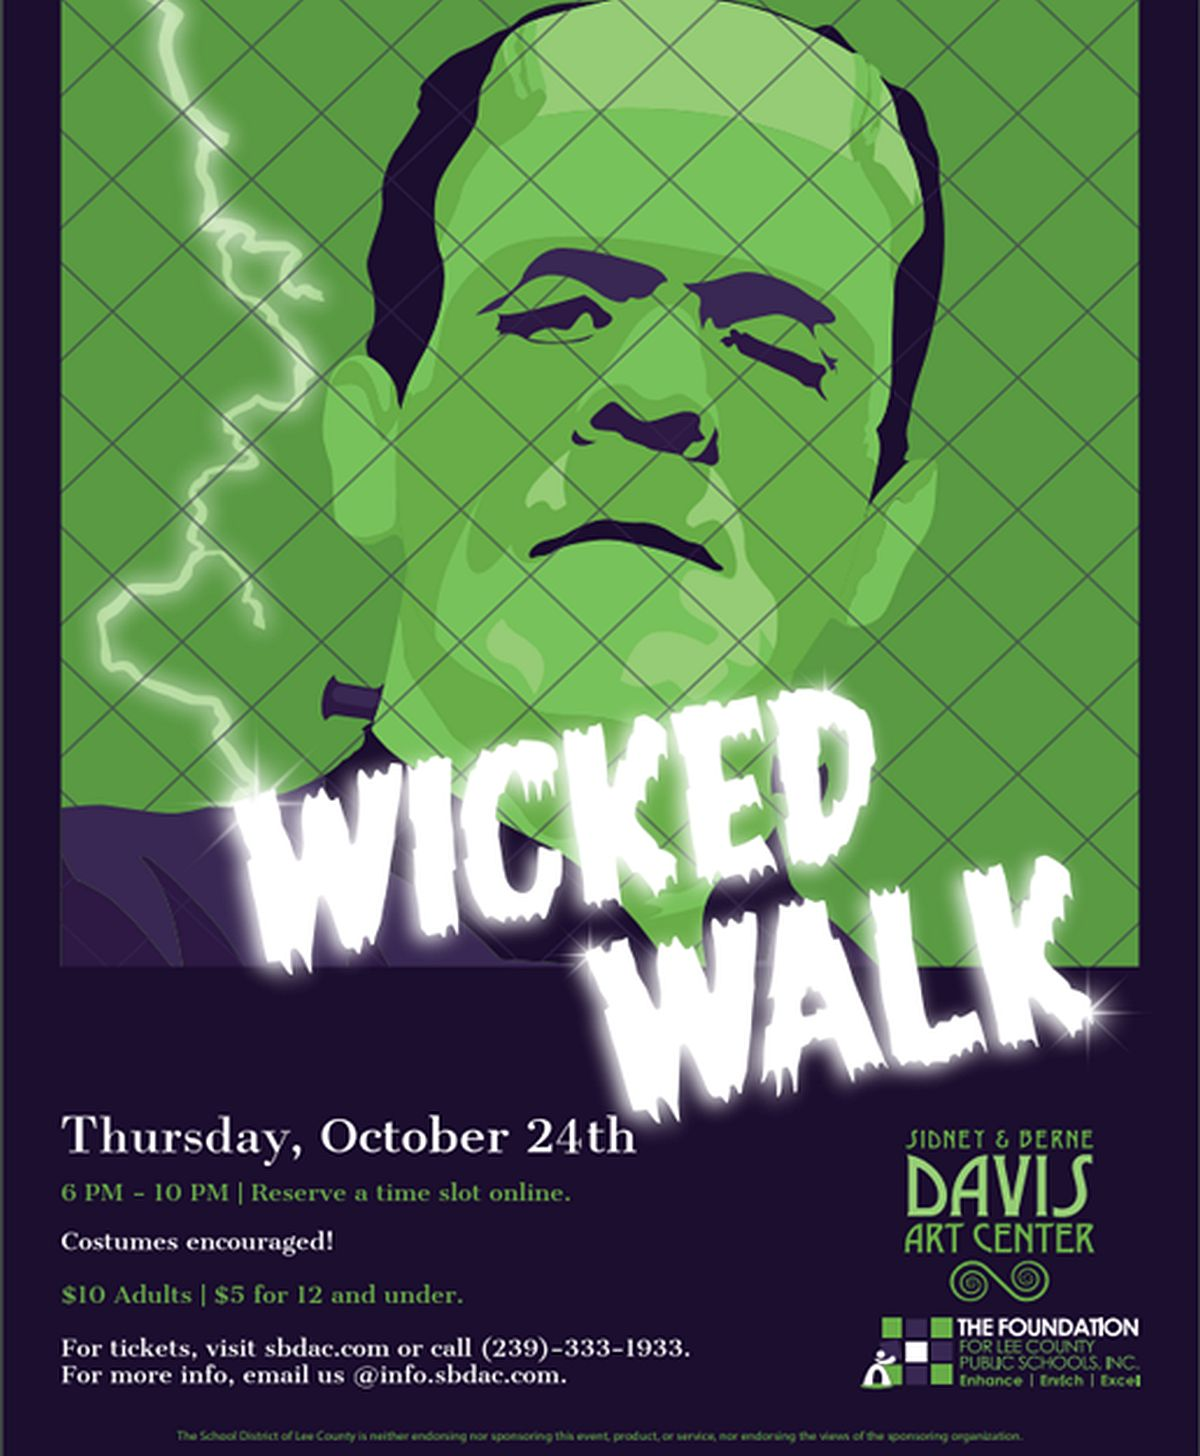 The Foundation for Lee County Public Schools and The Sidney & Berne Davis Art Center Hosts the 2nd Annual Wicked Walk